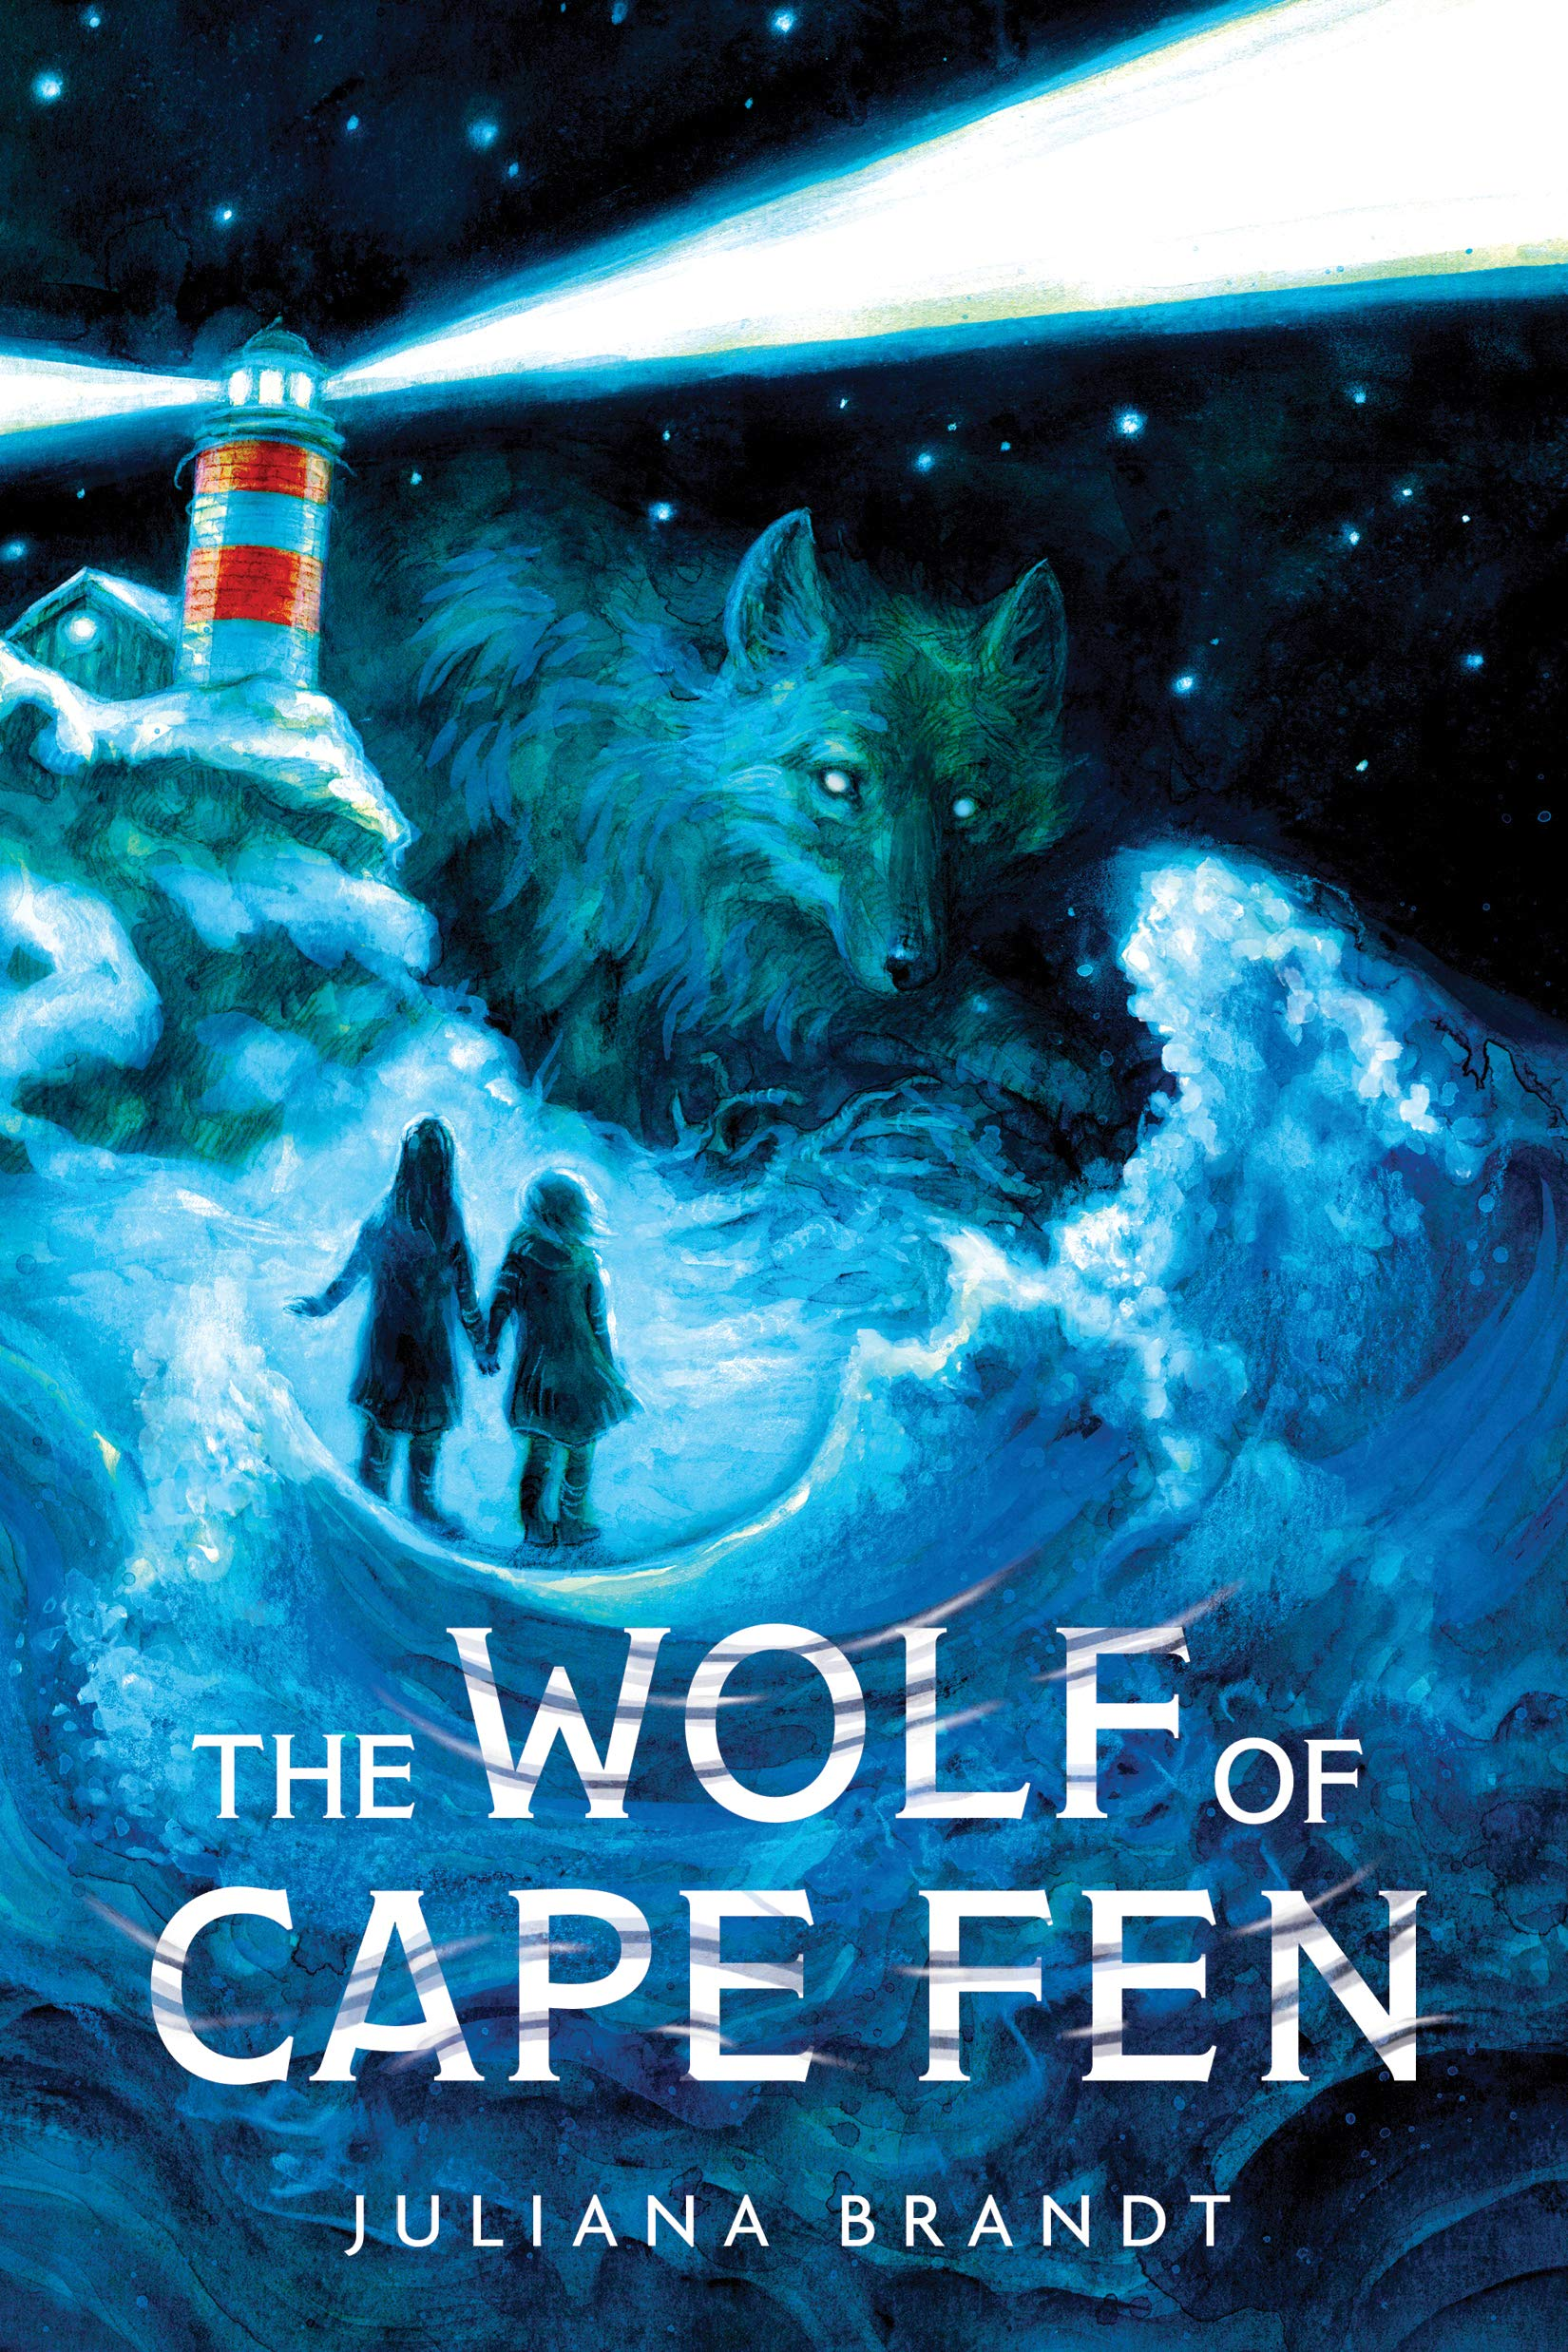 The Wolf of Cape Fen by Juliana Brandt. Book cover image shows a lighthouse, a wolf, and the silhouette of two girls walking by rough sea waves.